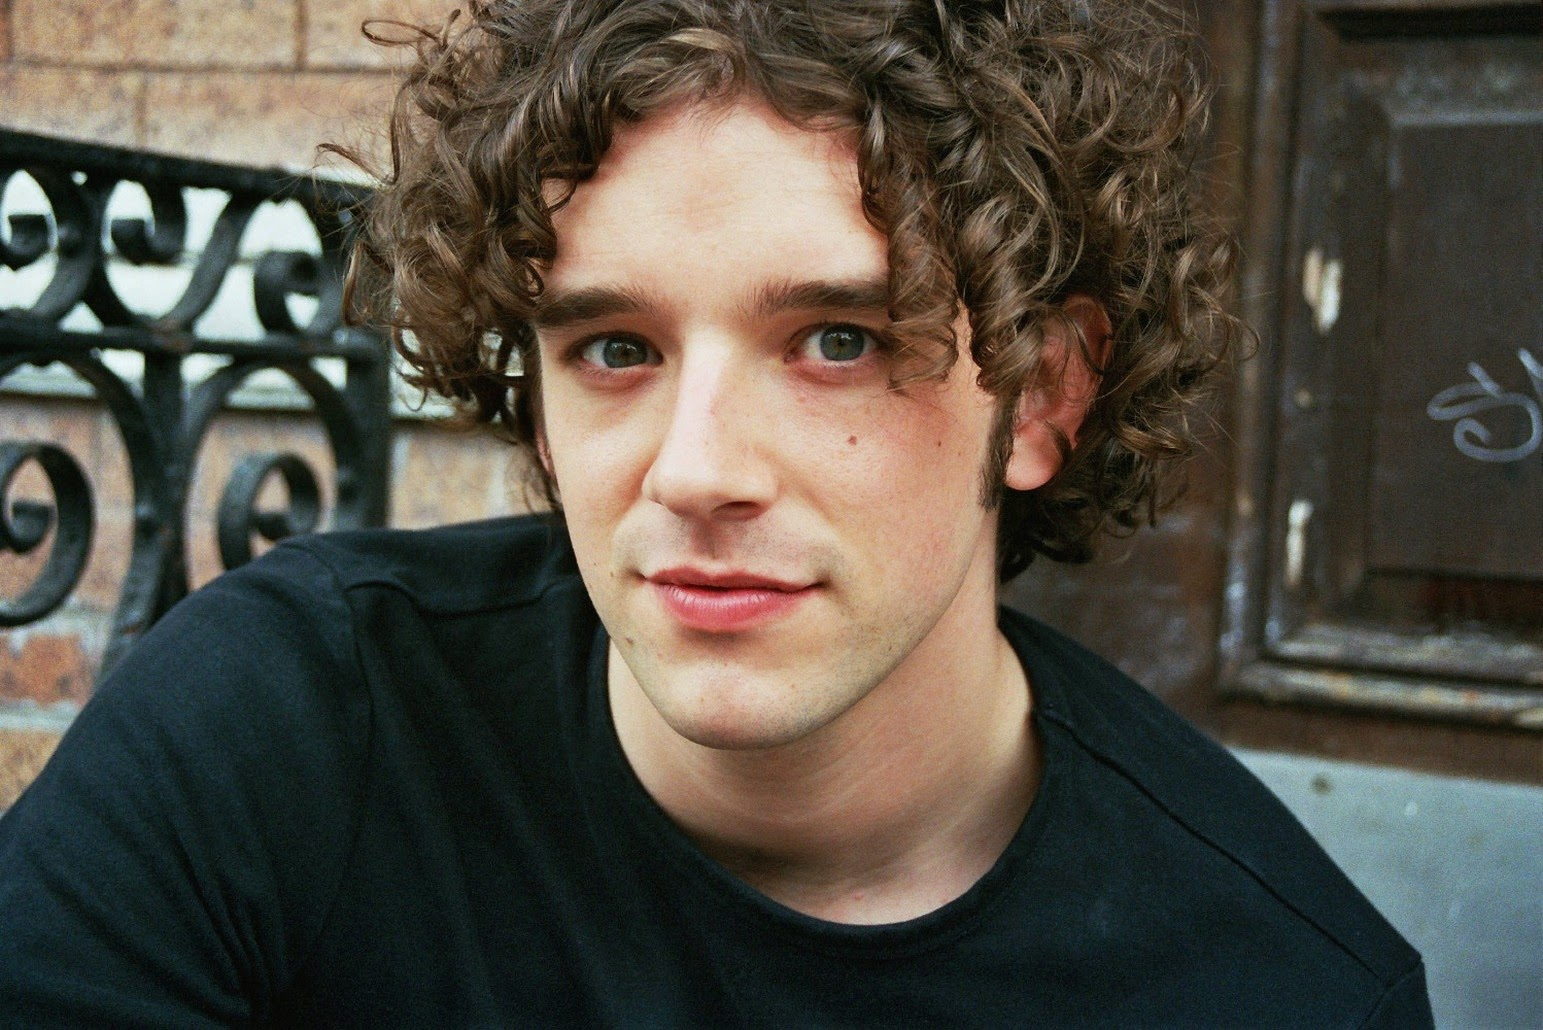 super curly hairstyles for men - Hairstyles 24x7, short hairstyles ...